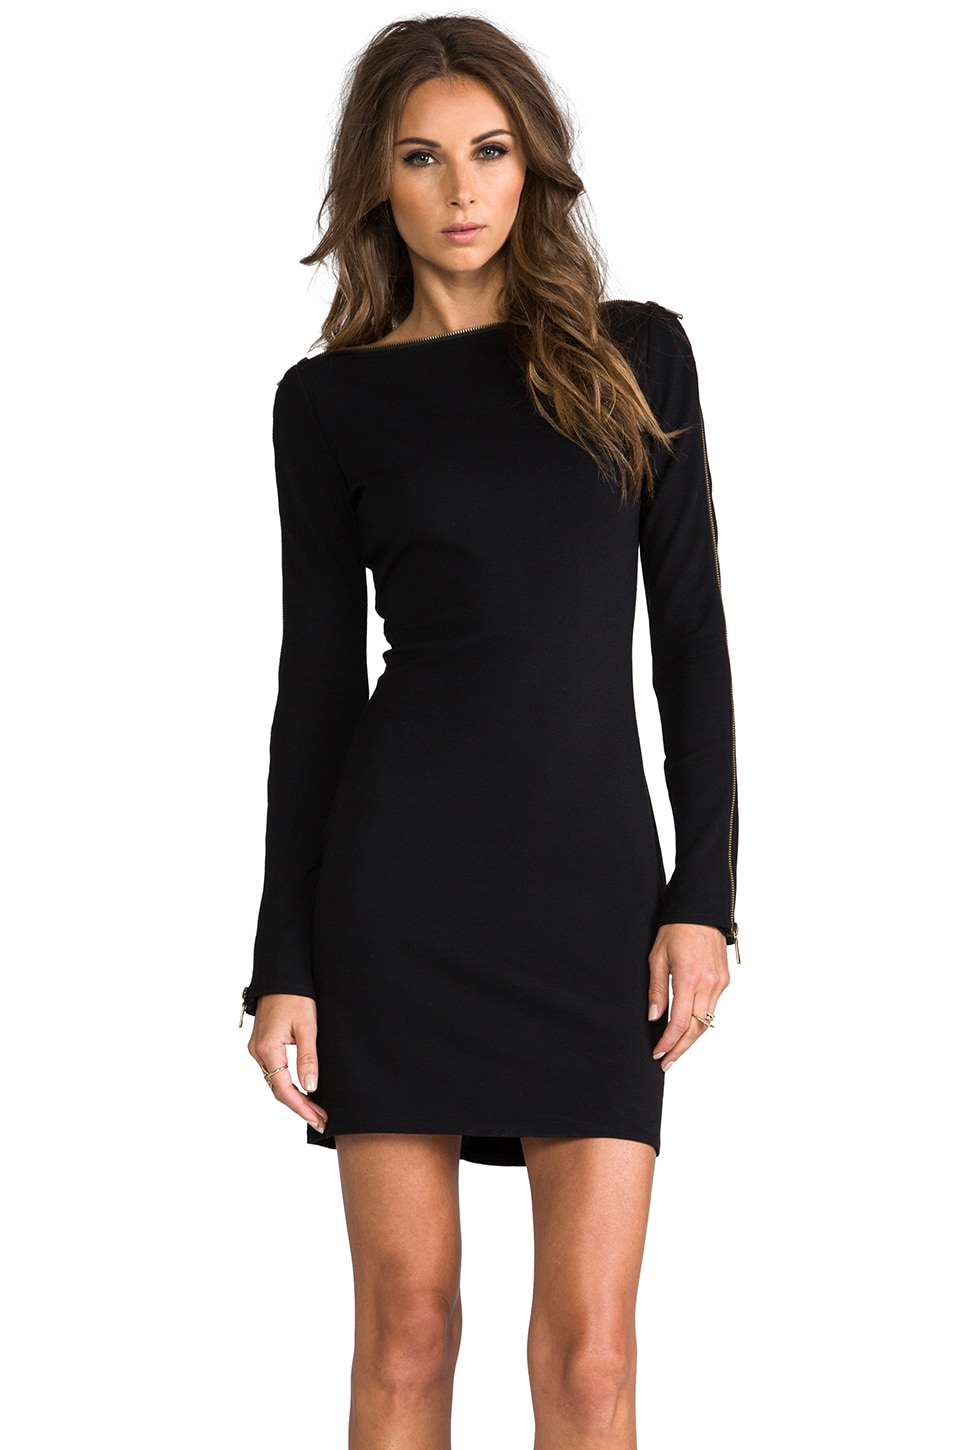 RACHEL ZOE Pearson Zipper Dress in Black